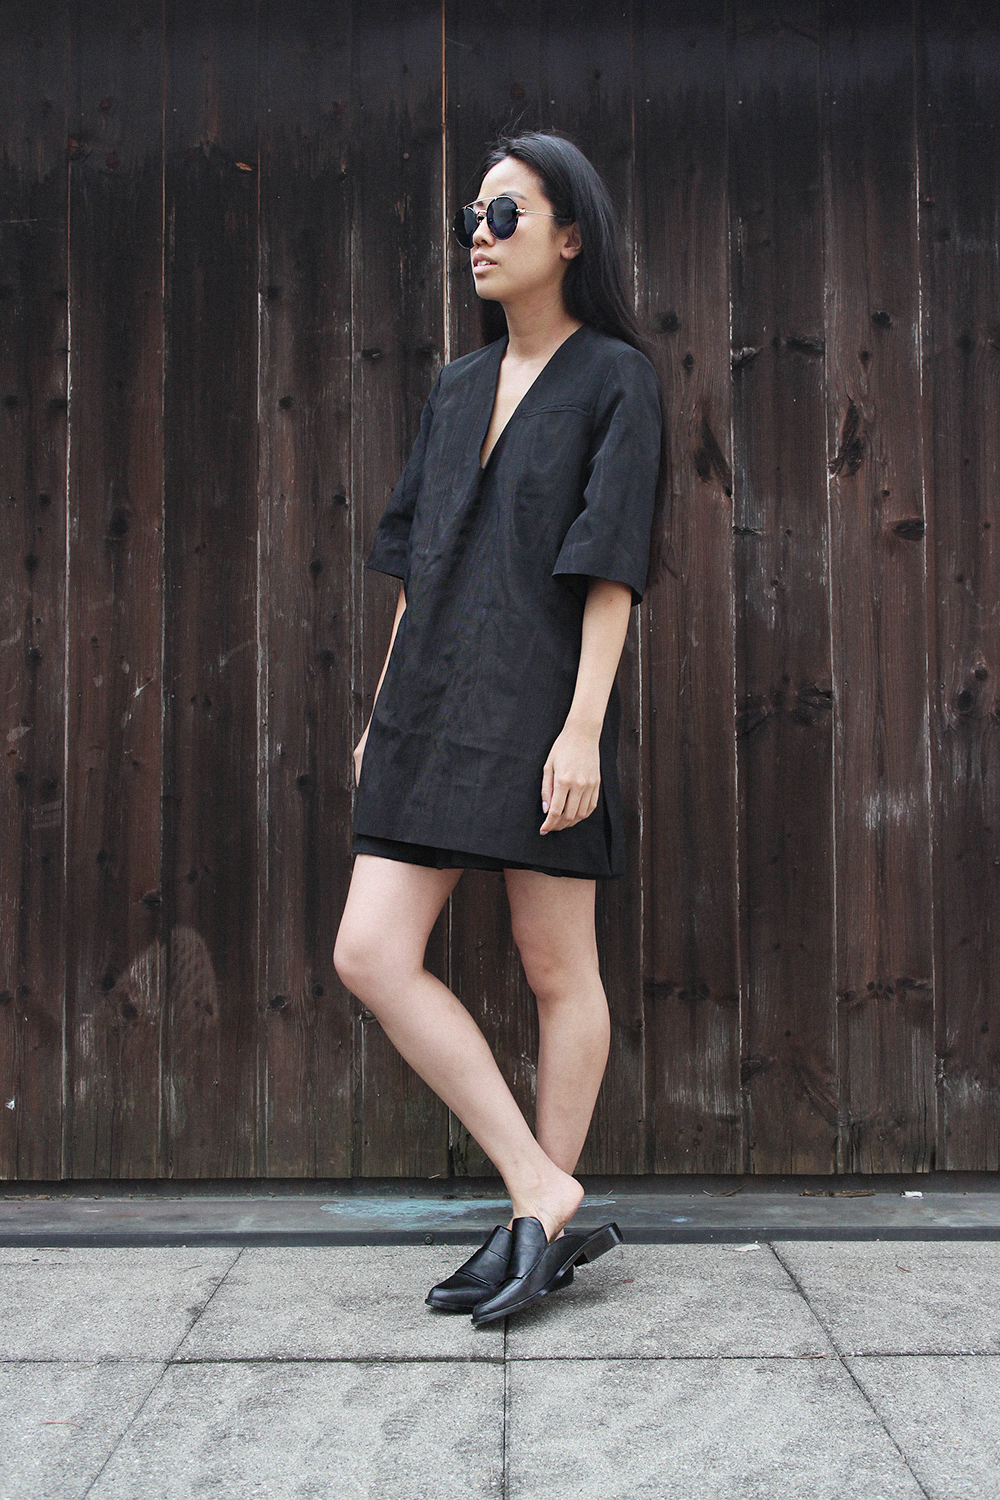 IHEARTALICE.DE – Fashion & Travel Blog: All Black Everything Look wearing Tibi Leather Loafers